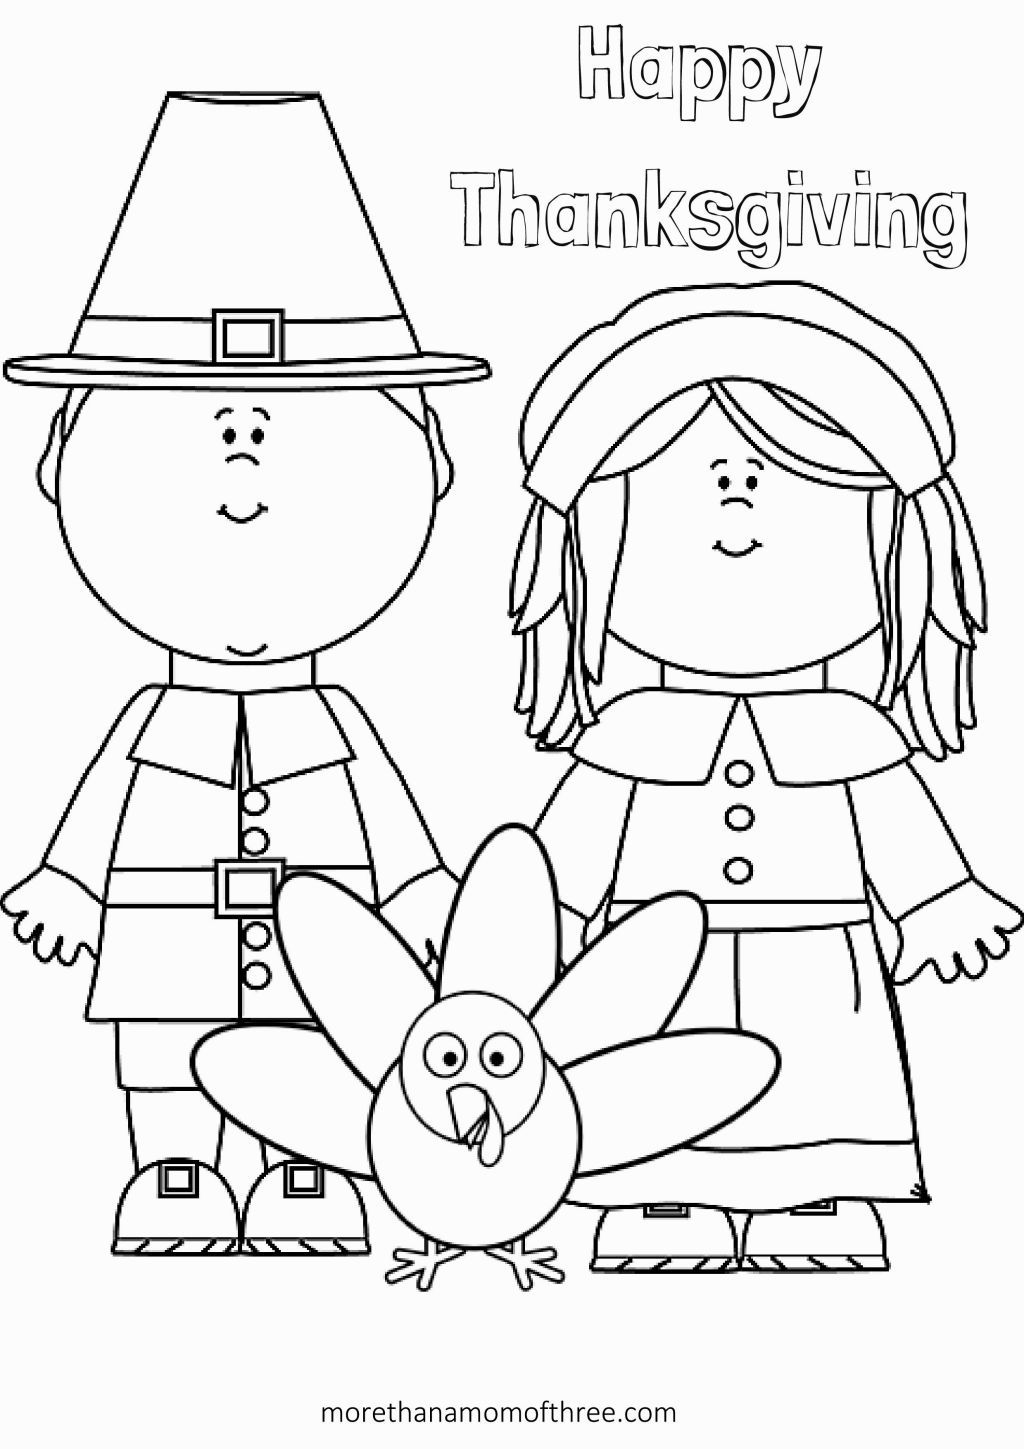 Coloring Pages Turkeys Preschool : Thanksgiving preschool coloring pages az